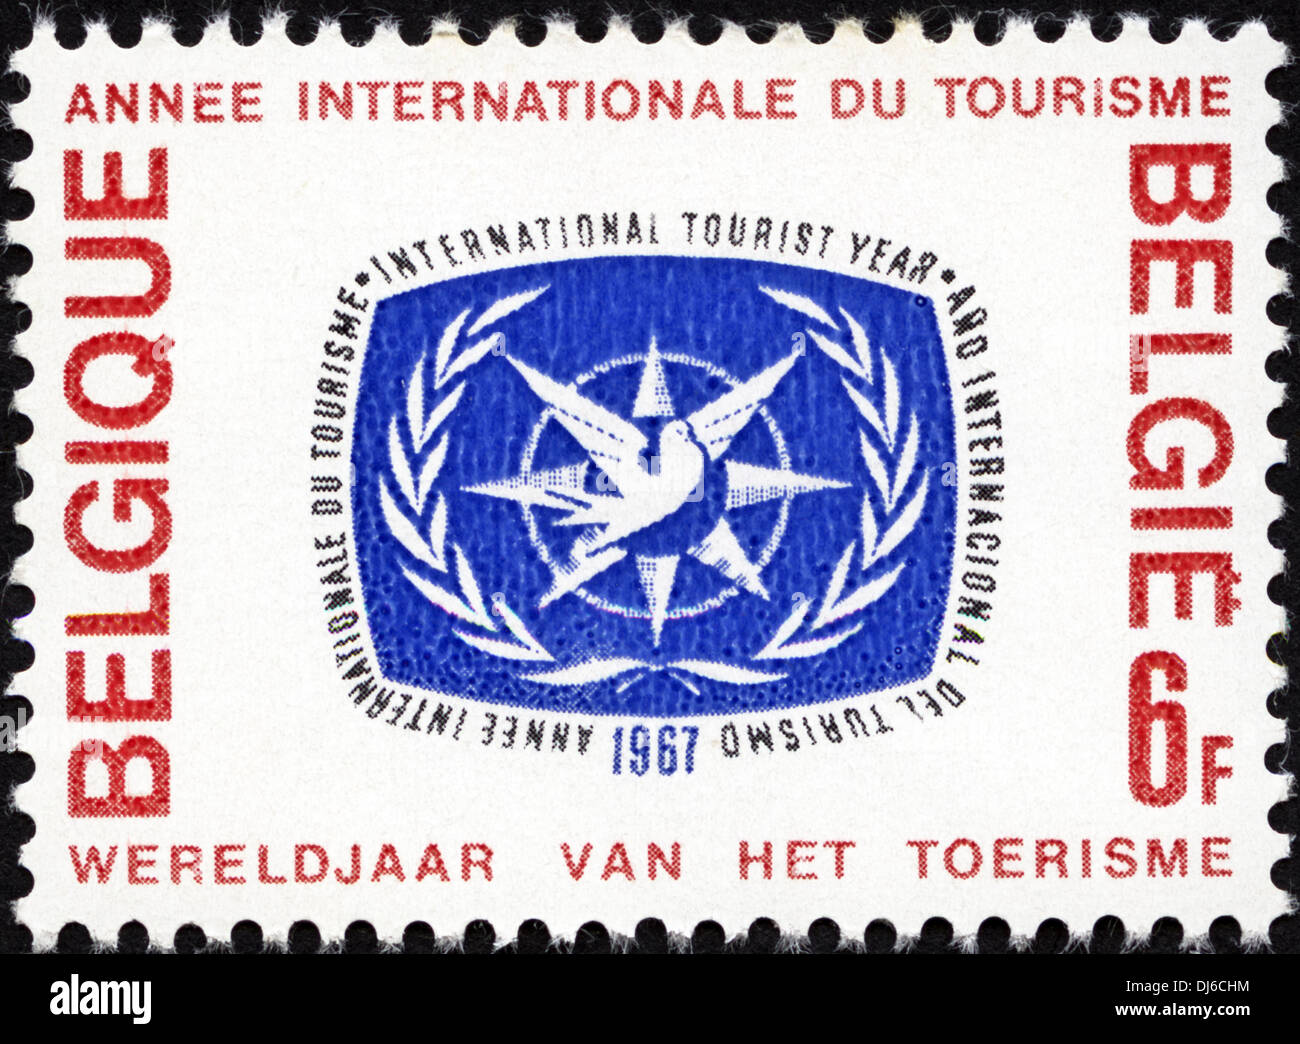 postage stamp Belgium 6F featuring International Tourist Year 1967 dated 1967 - Stock Image